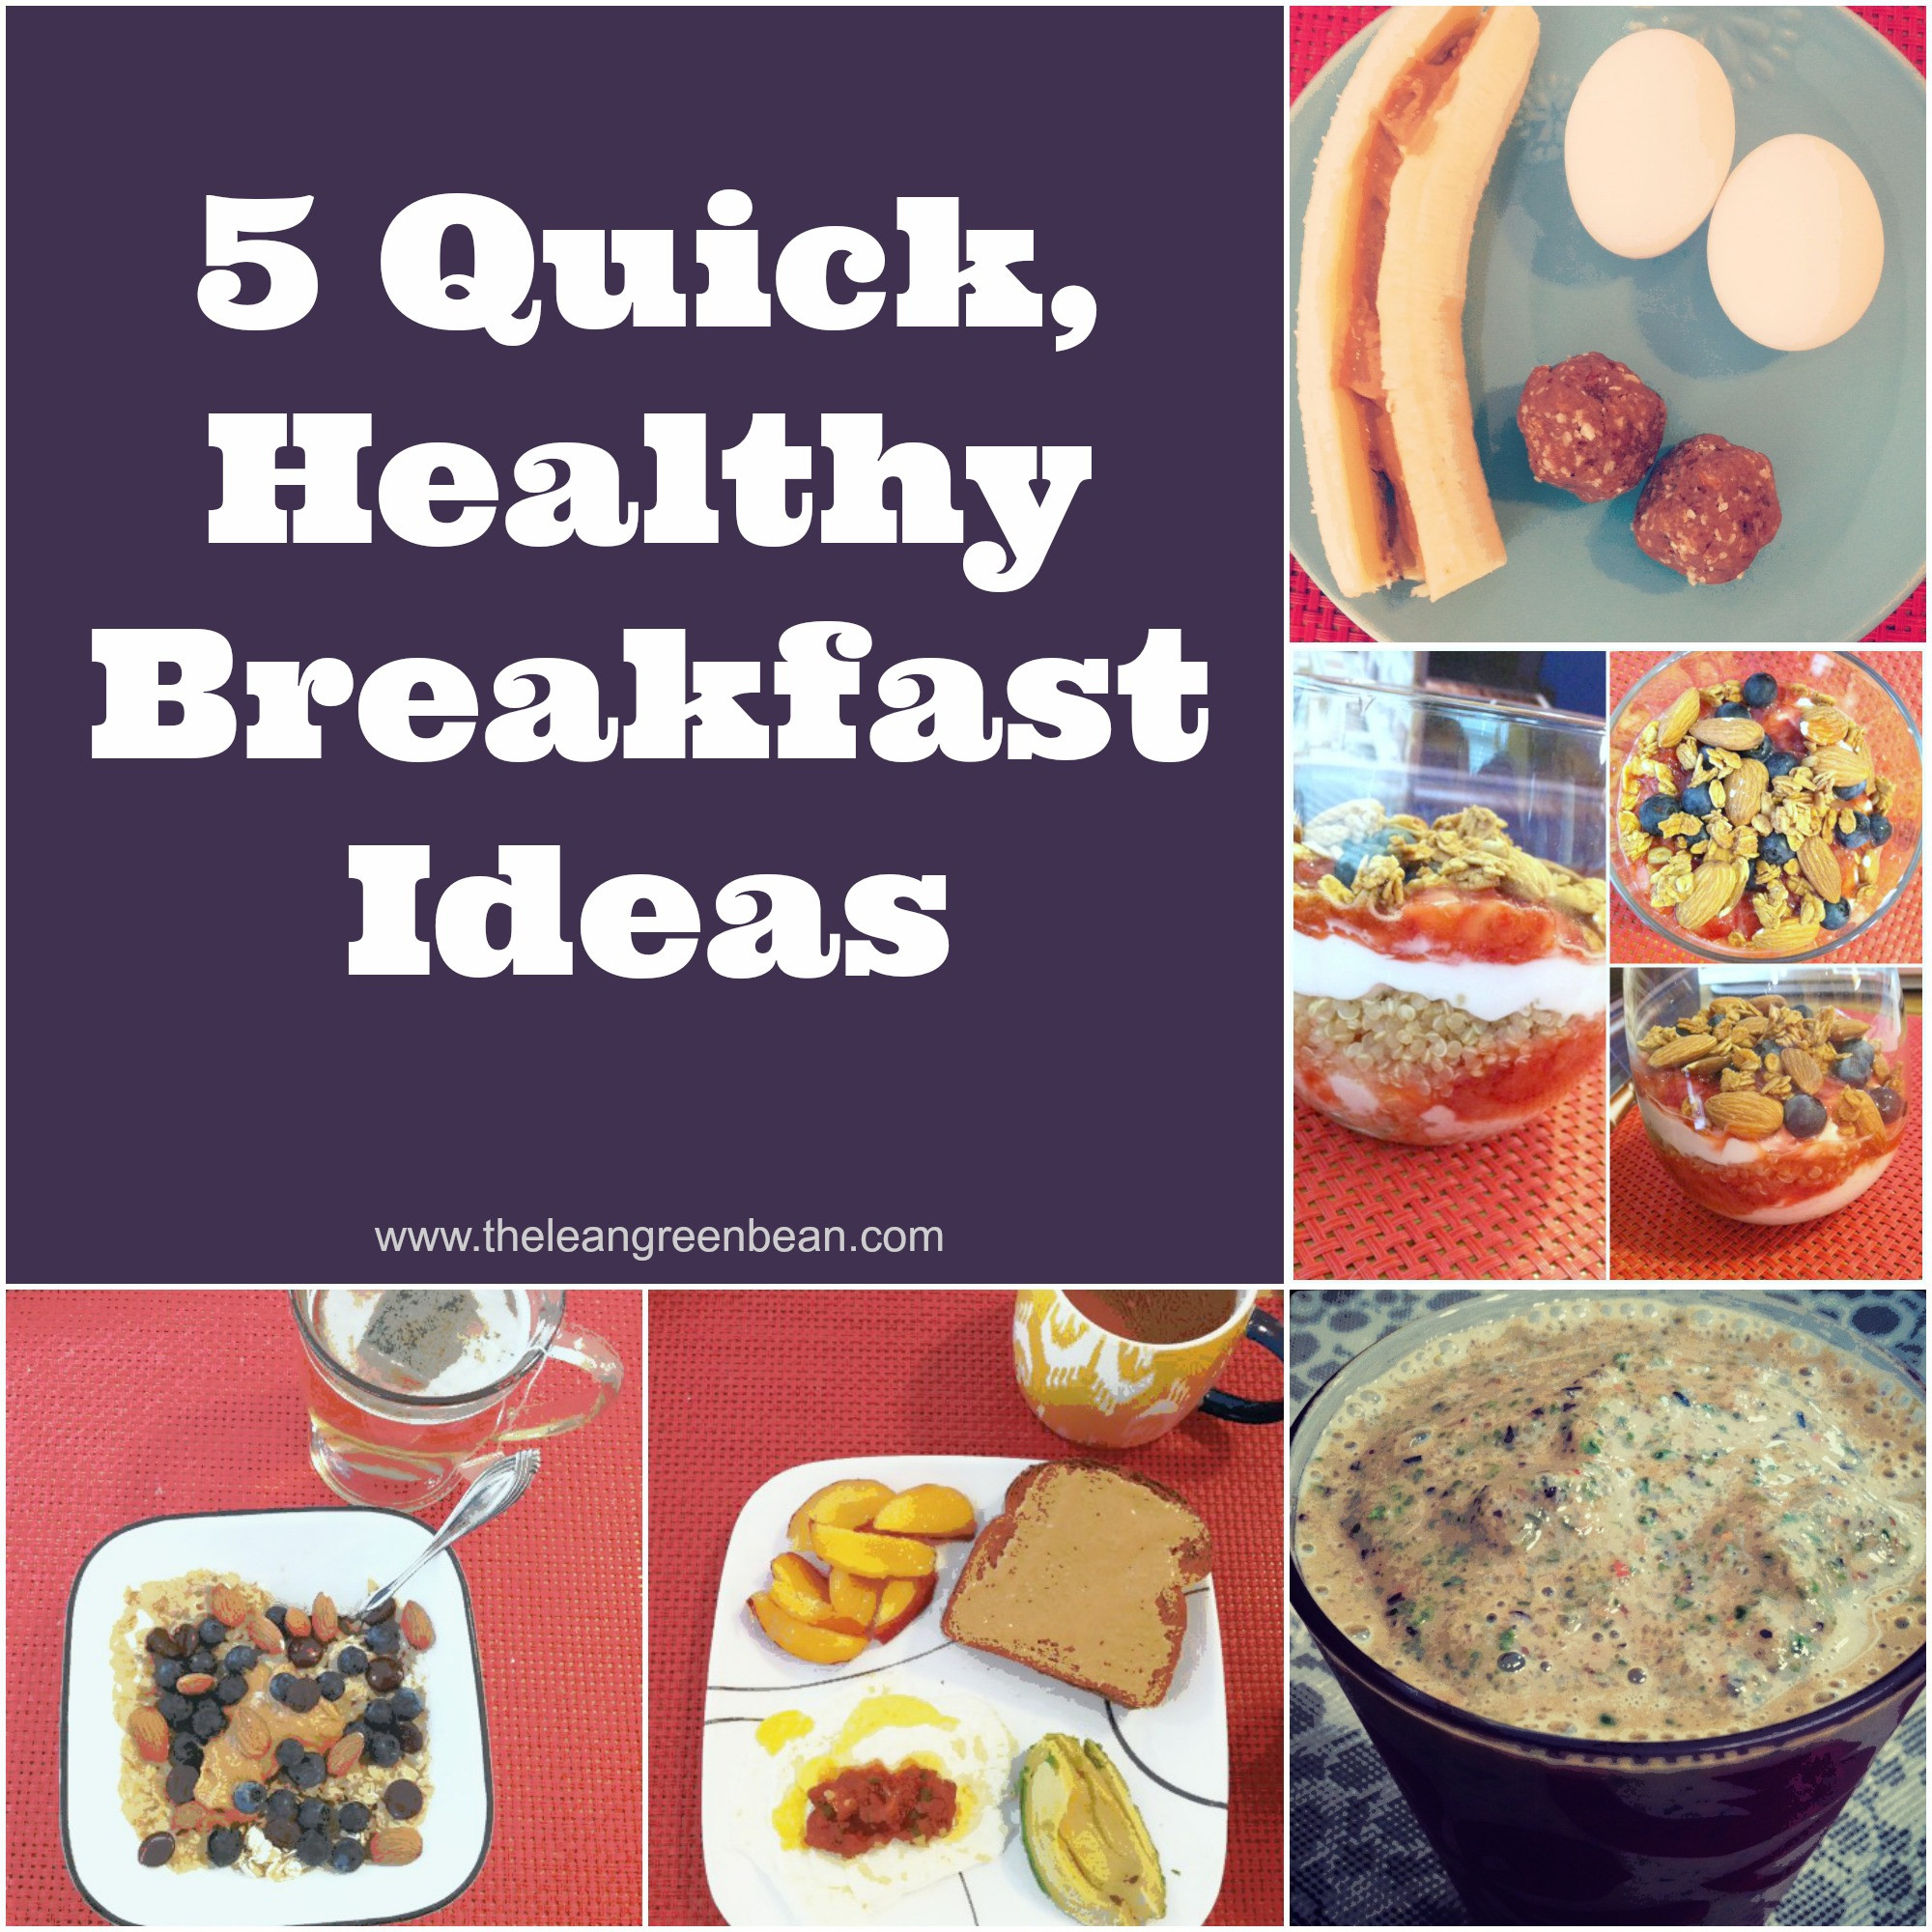 Quick Healthy Breakfast Ideas  5 Quick Healthy Breakfast Ideas from a Registered Dietitian